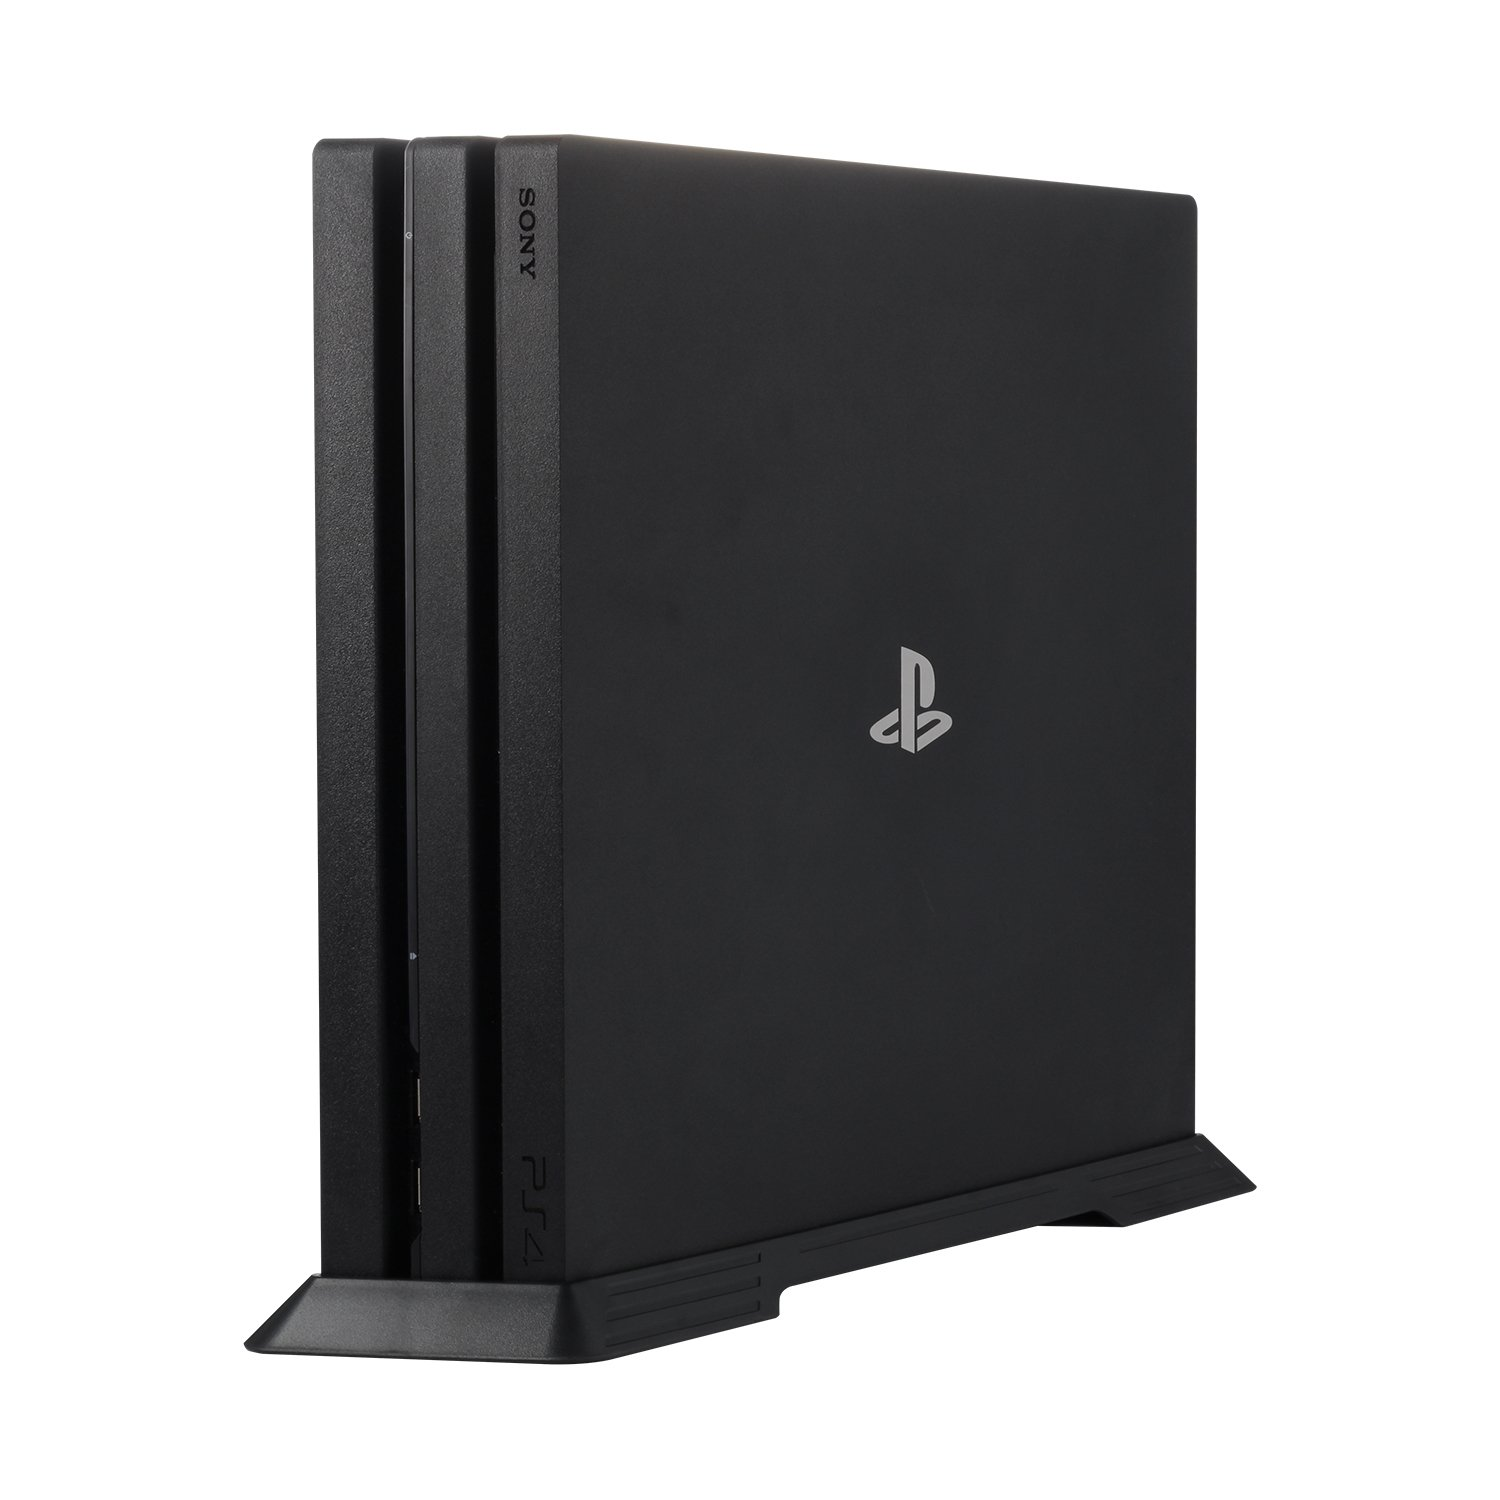 Younik VG-03 PS4 Pro Vertical Stand for Playstation 4 Pro with Built-in Cooling Vents and Non-slip Feet